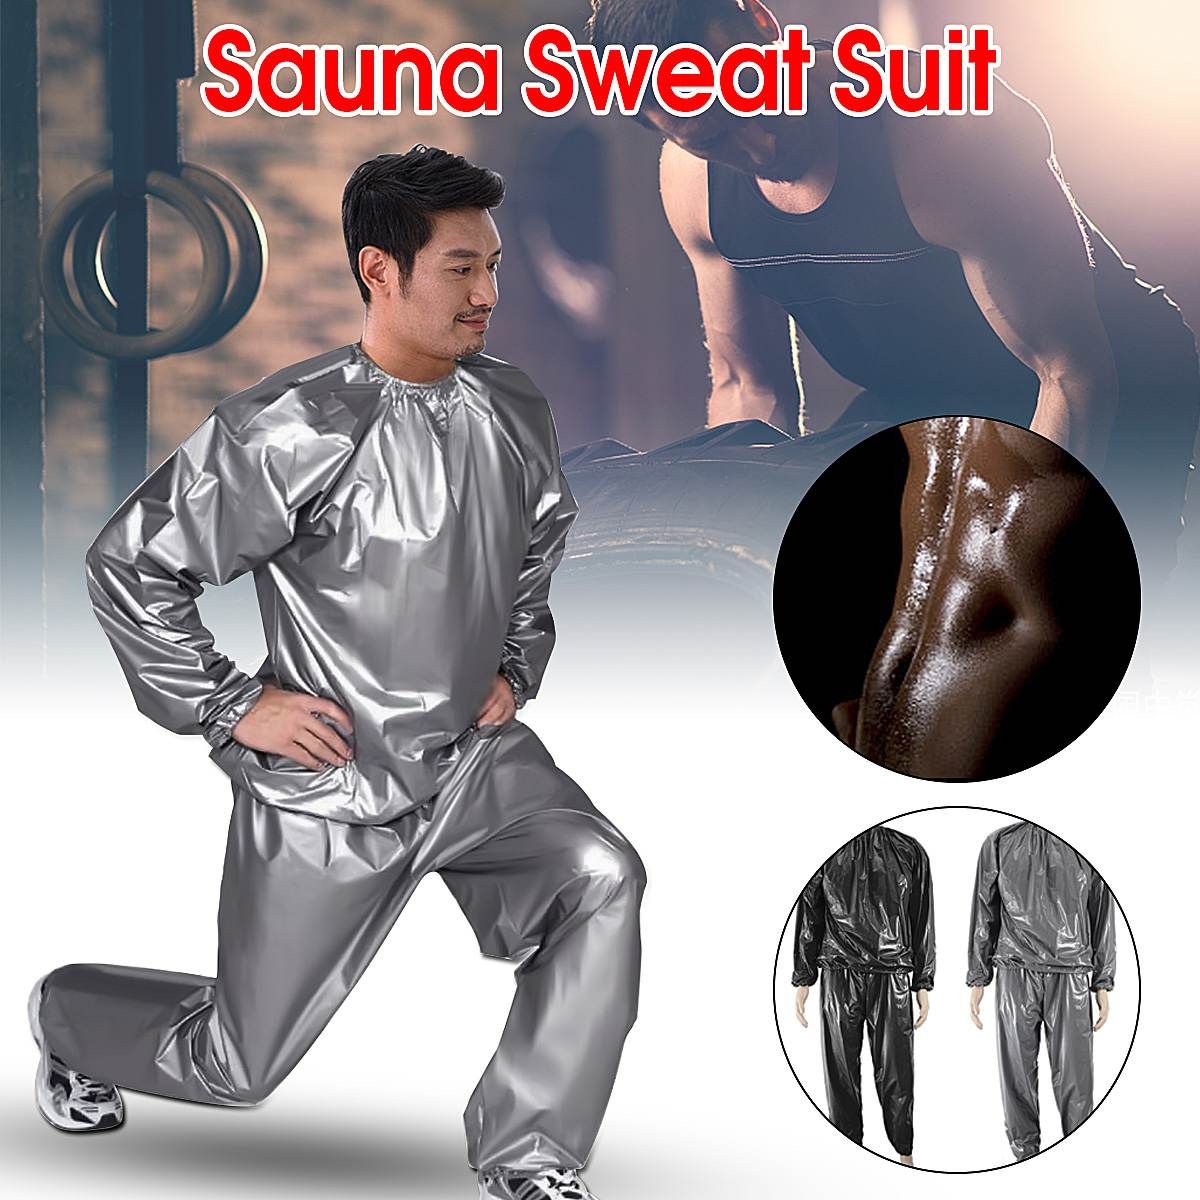 Sauna Suit Mens Womens Gym Clothing Set Sportswear Running Fitness Weight Loss Sweating Sports Suit